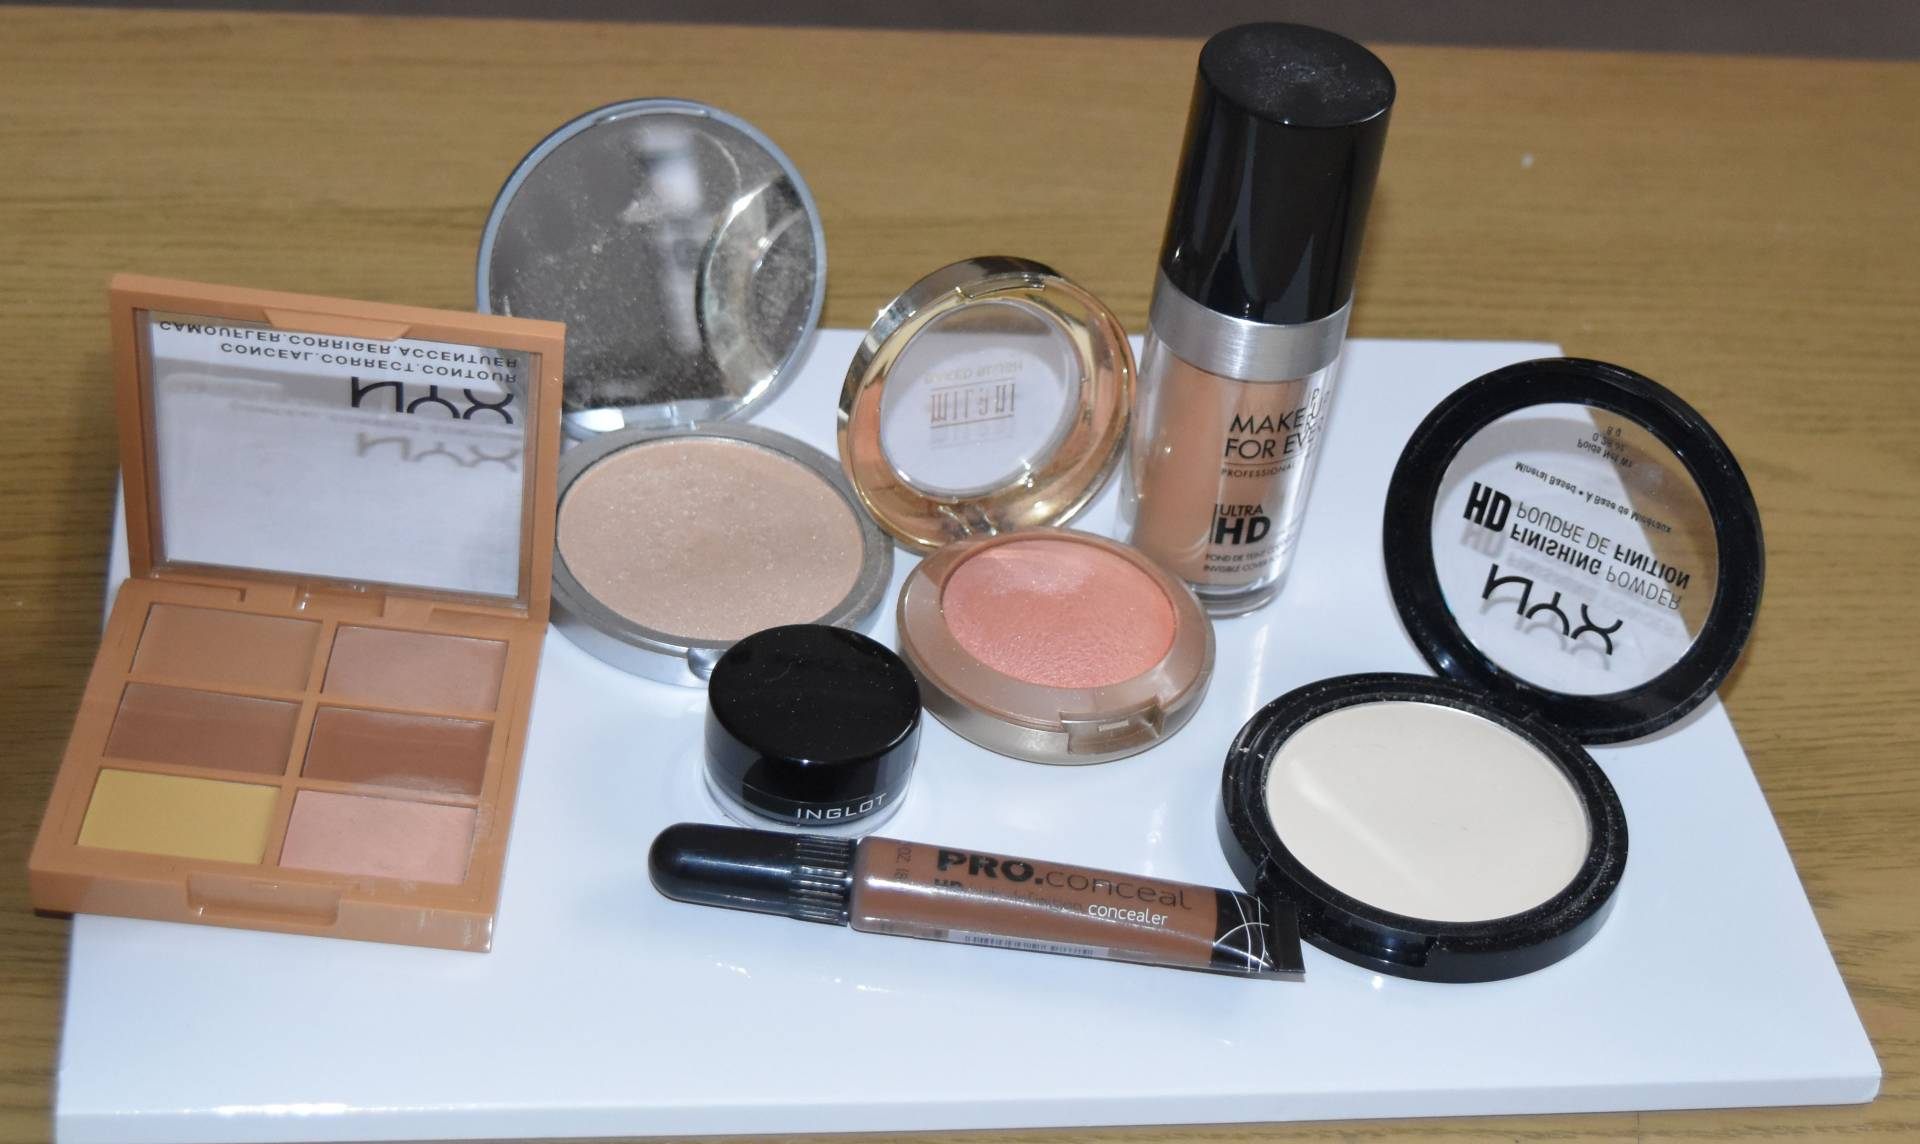 My makeup favourites